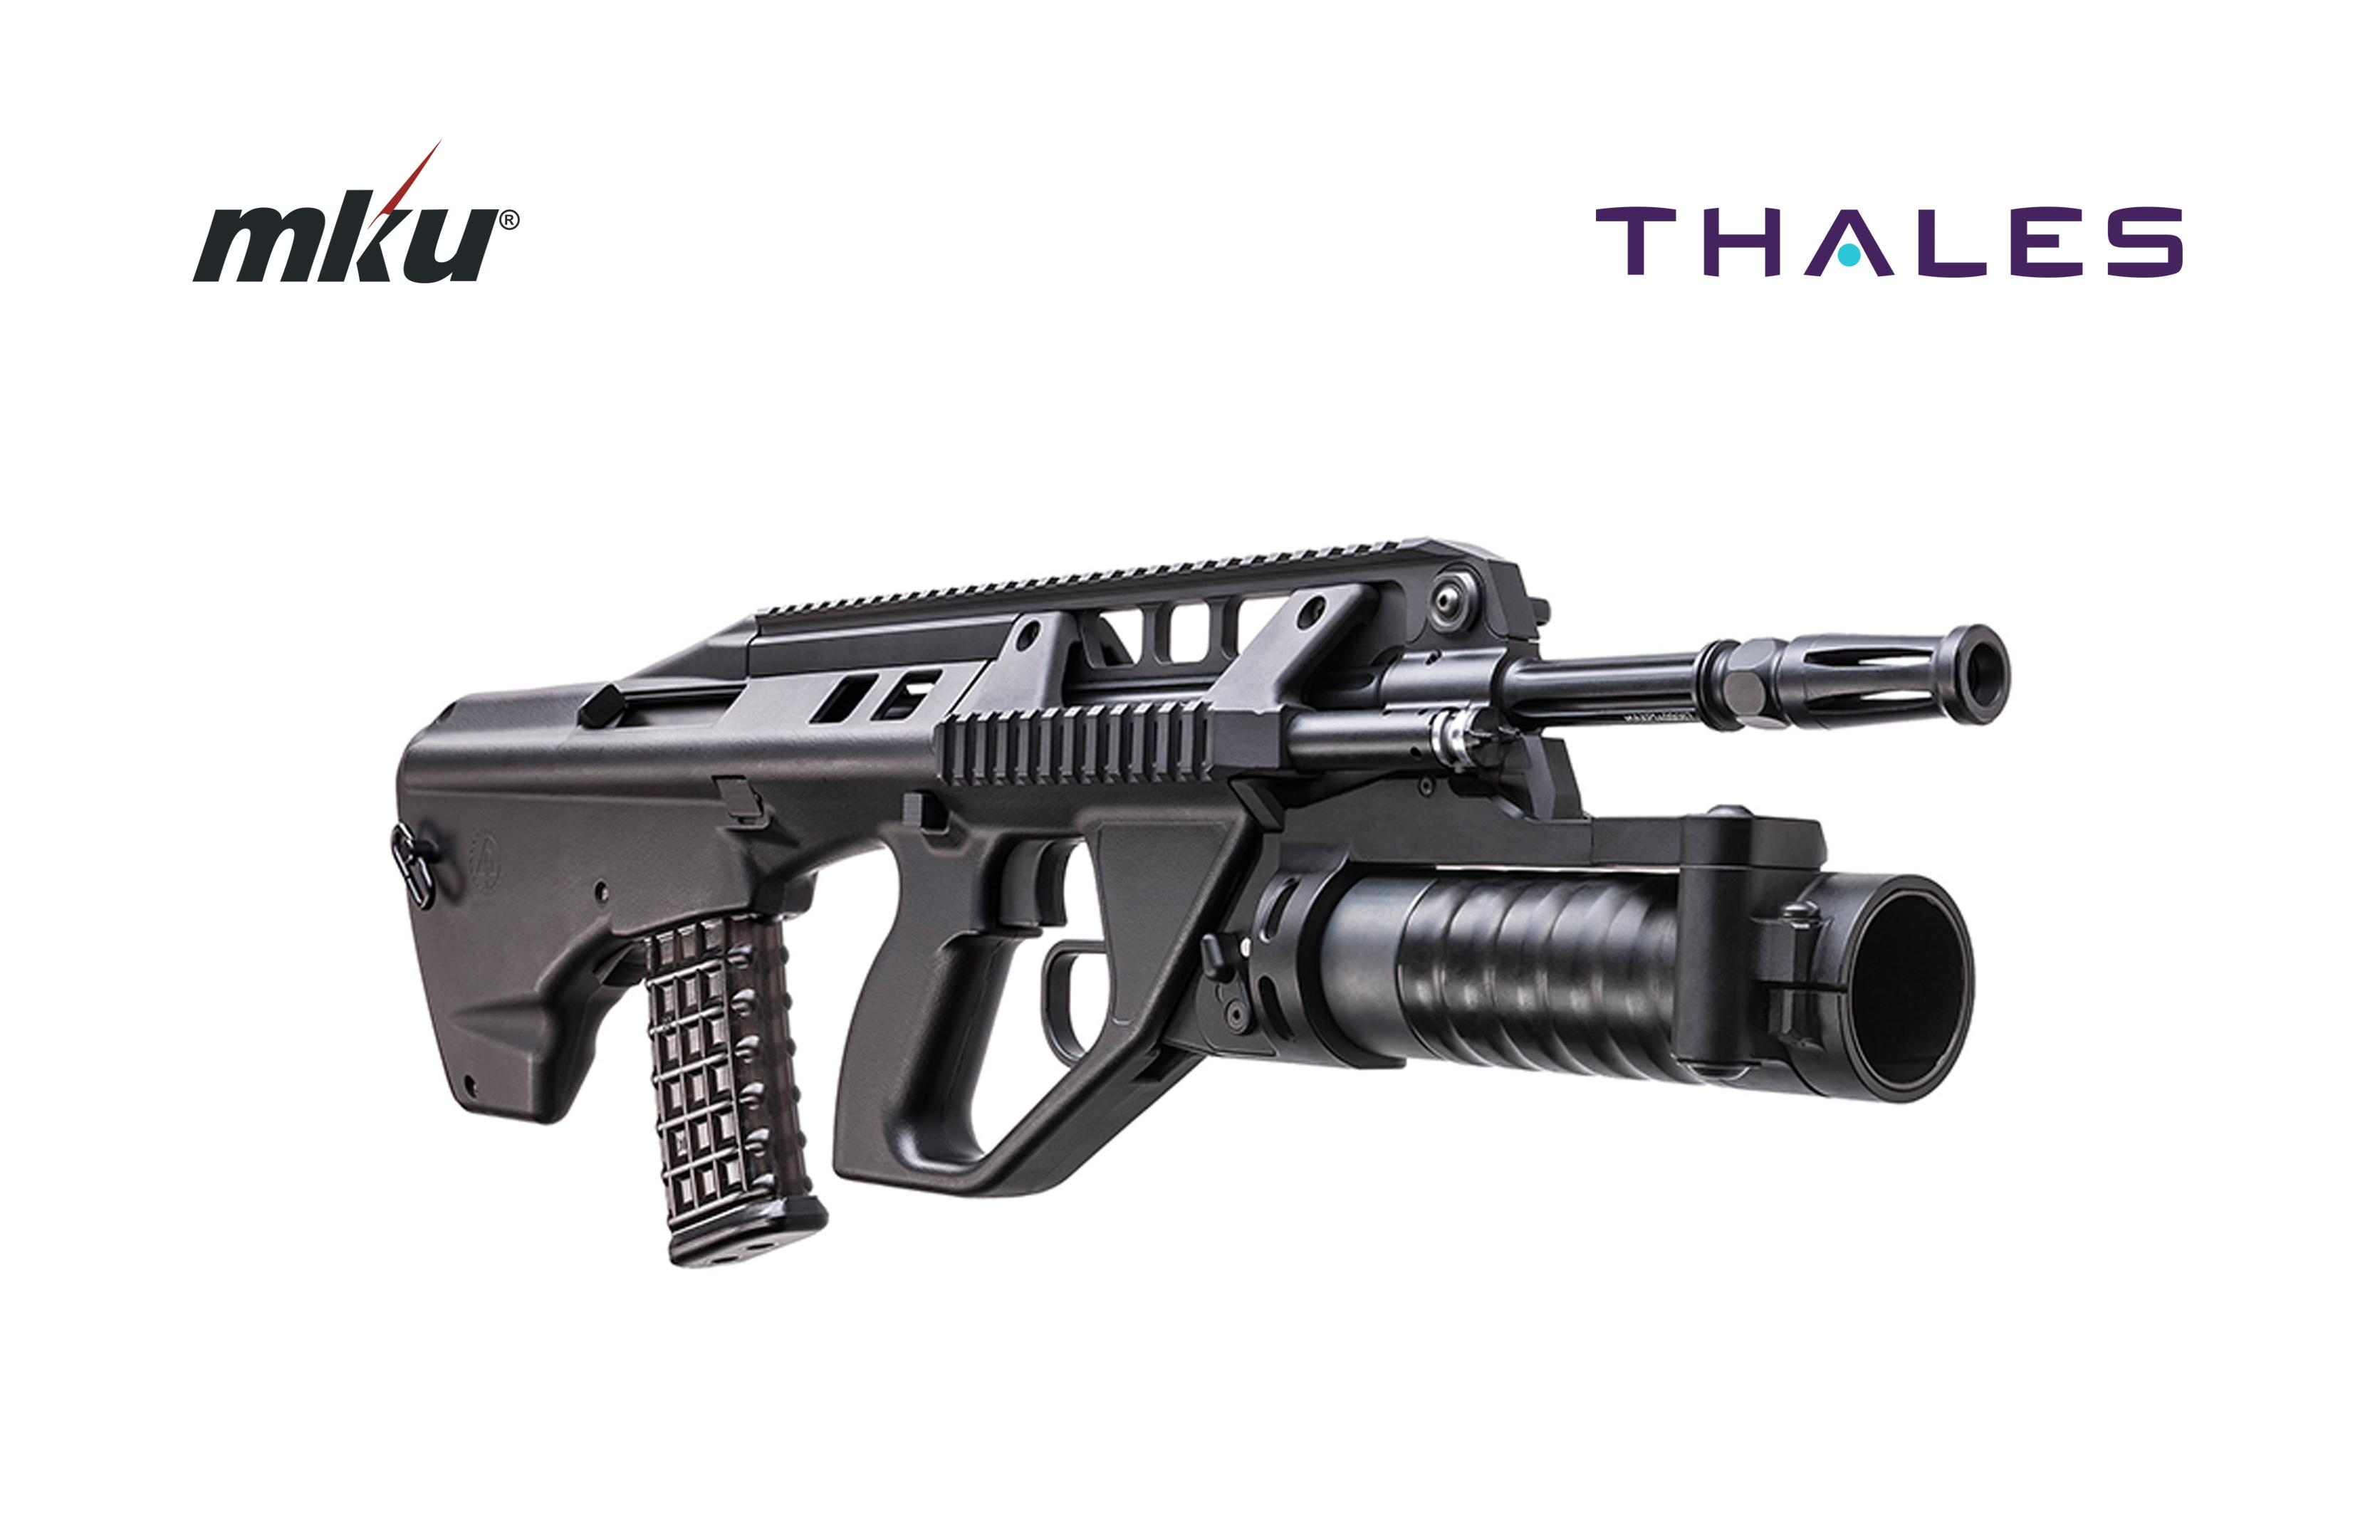 F90 Assult Rifle - MKU and Thales - Thalesgroup